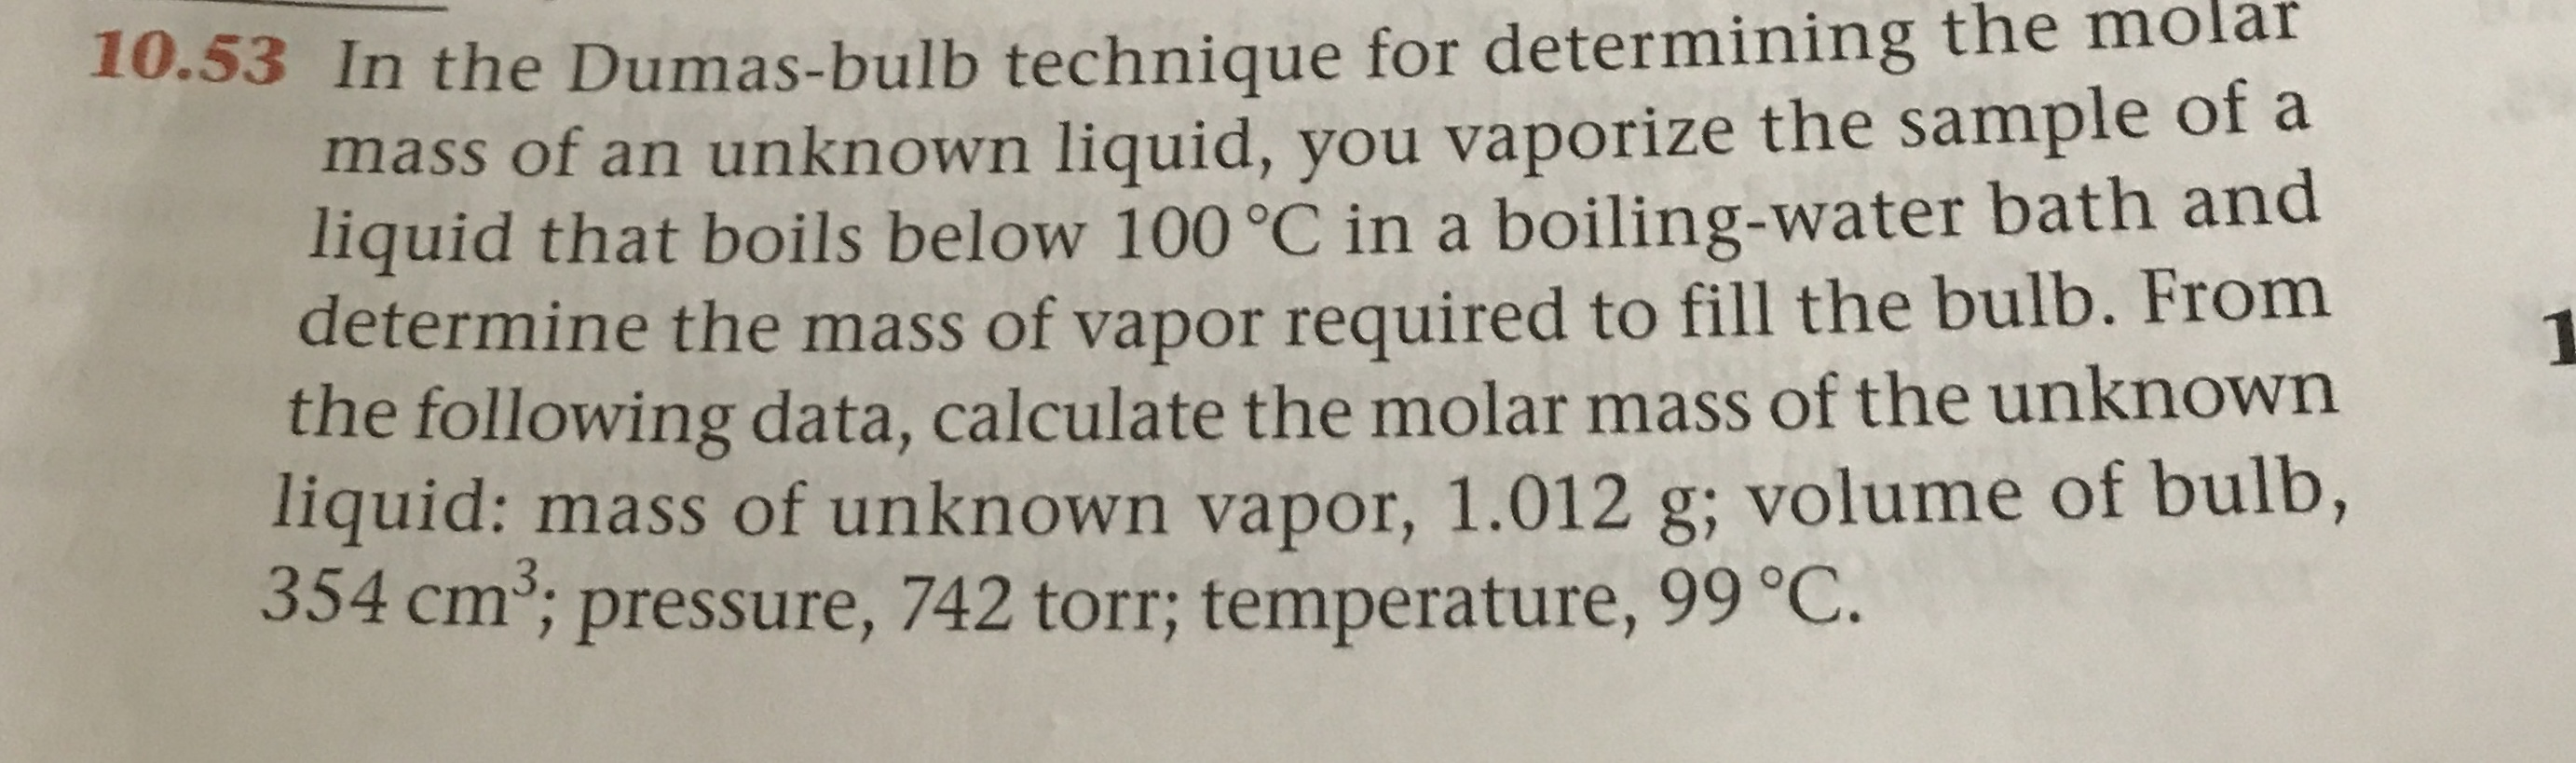 .53 In the Dumas-bulb technique for determining the molar mass of an unknown liquid, you vaporize the sample of a liquid that boils below 100 °C in a boiling-water bath and determine the mass of vapor required to fill the bulb. From the following data, calculate the molar mass of the unknown liquid: mass of unknown vapor, 1.012 g; volume of bulb, 354 cm; pressure, 742 torr; temperature, 99 °C. 3.